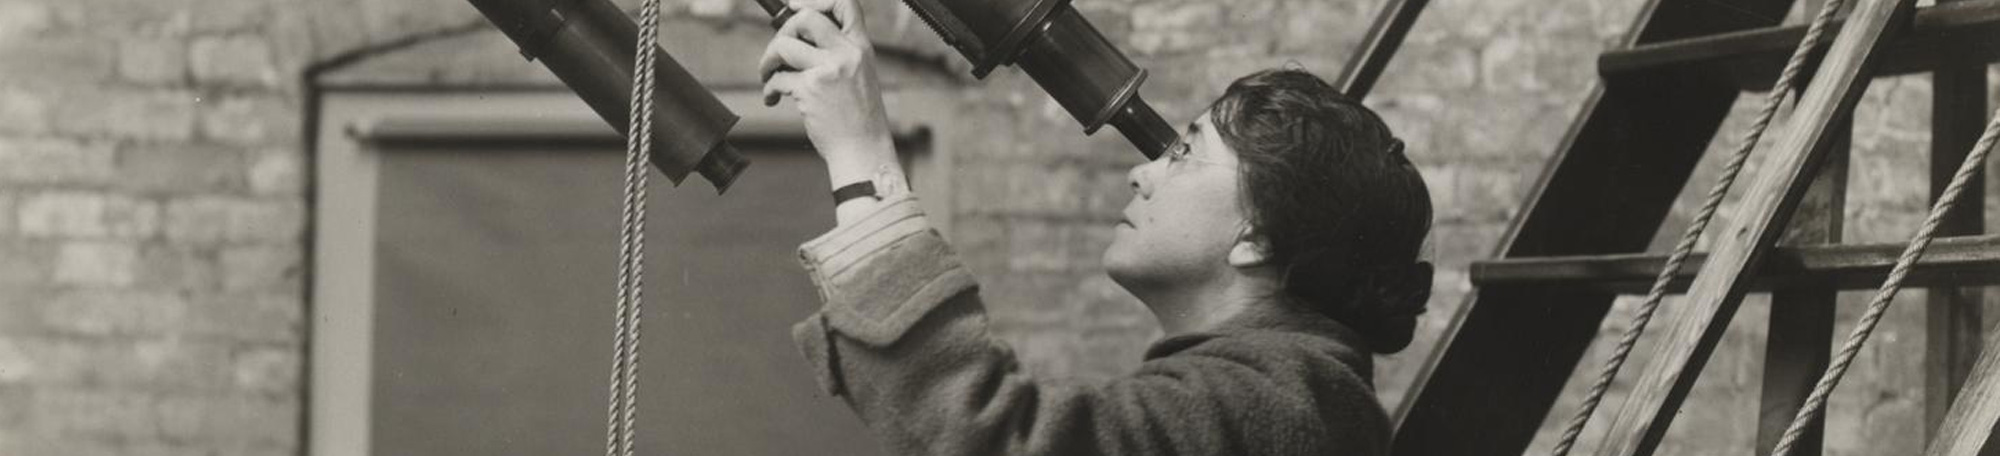 Mary Calvert, Astronomy Assistant, 1900